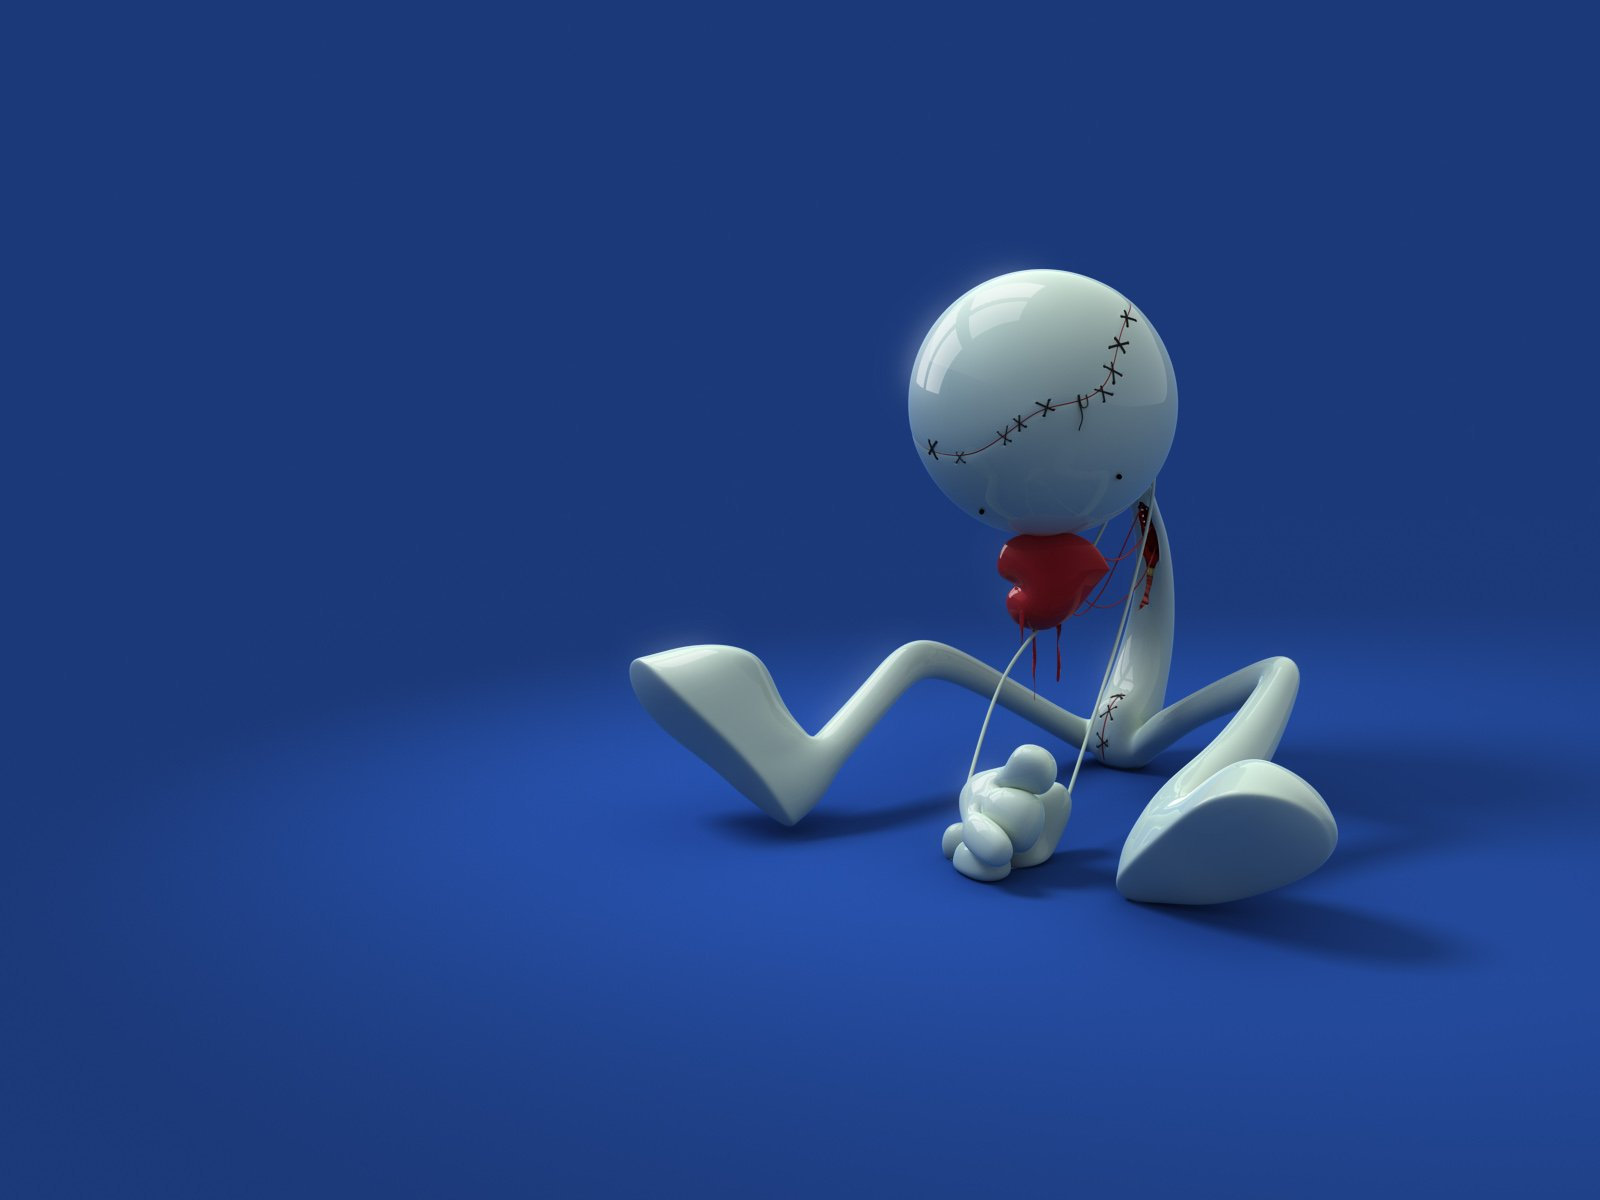 latest 2011 hd high quality wallpapers 3d xp wallpapers cool xp vista 1600x1200